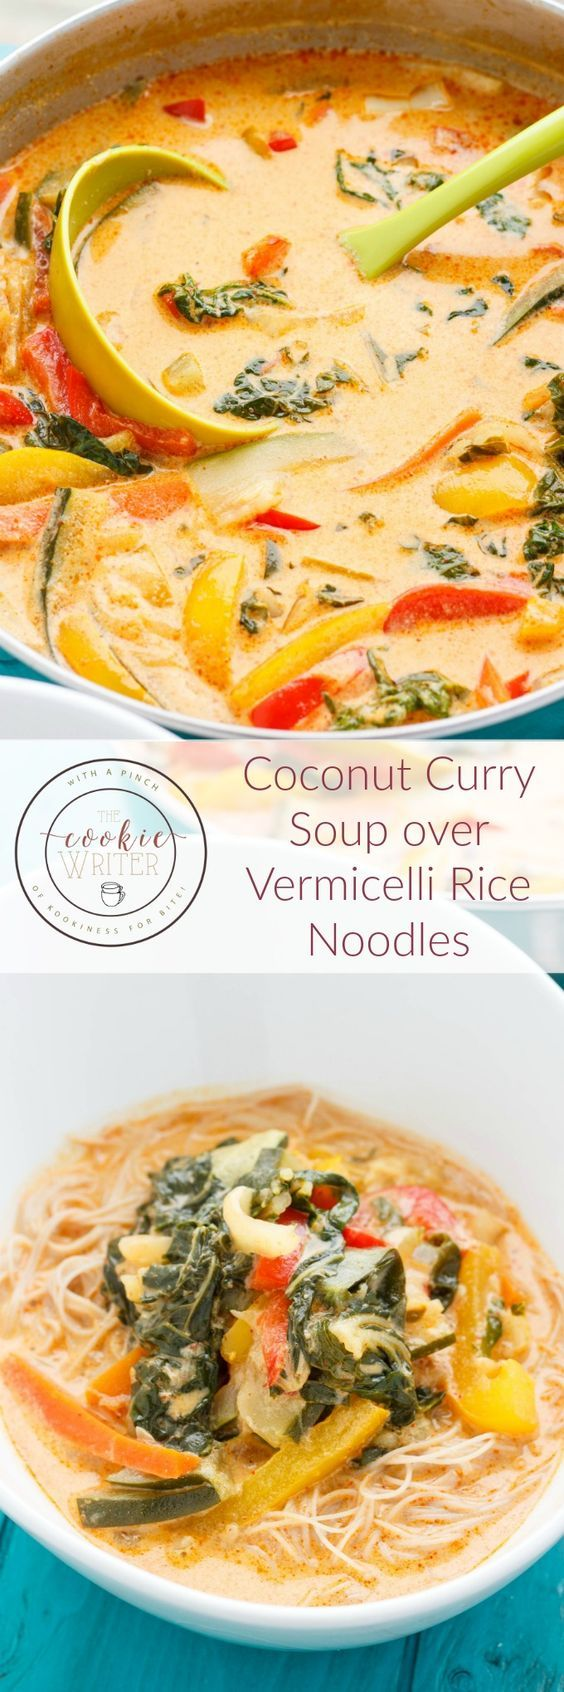 Coconut Curry Soup over Vermicelli Rice Noodles | thecookiewriter.com | @Kacey @ The Cookie Writer | #soup